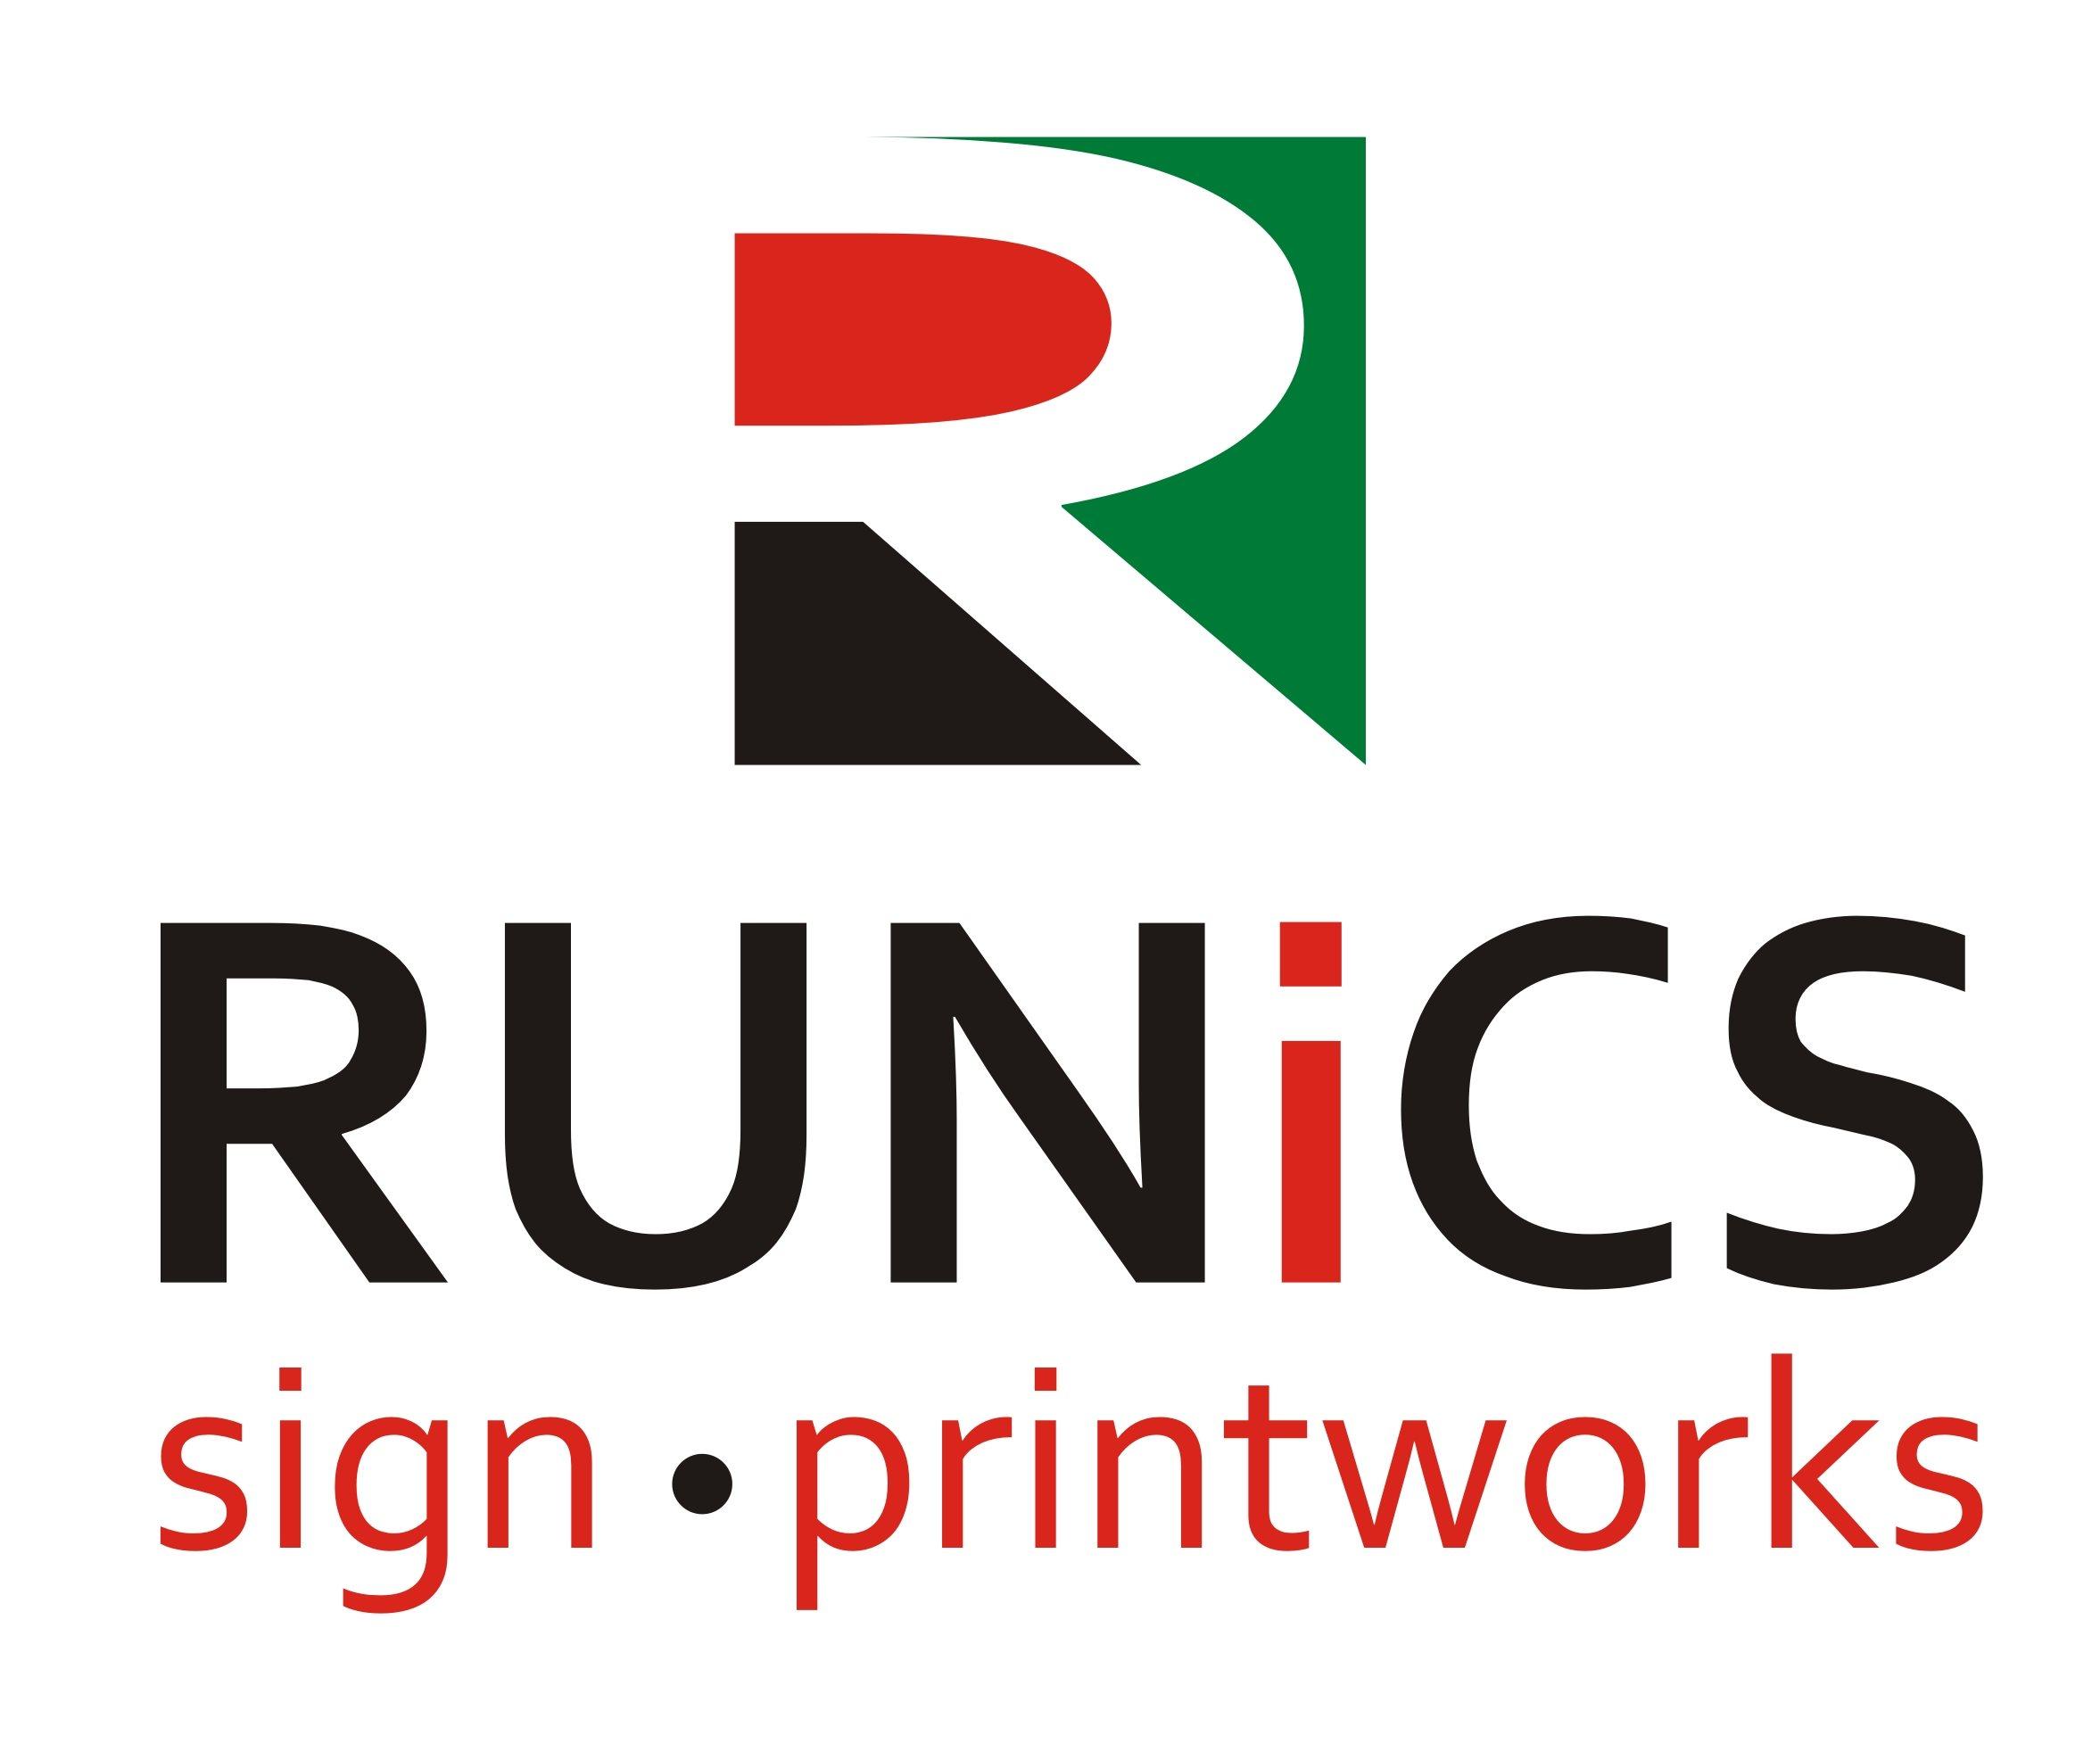 Runics Sign & Printworks